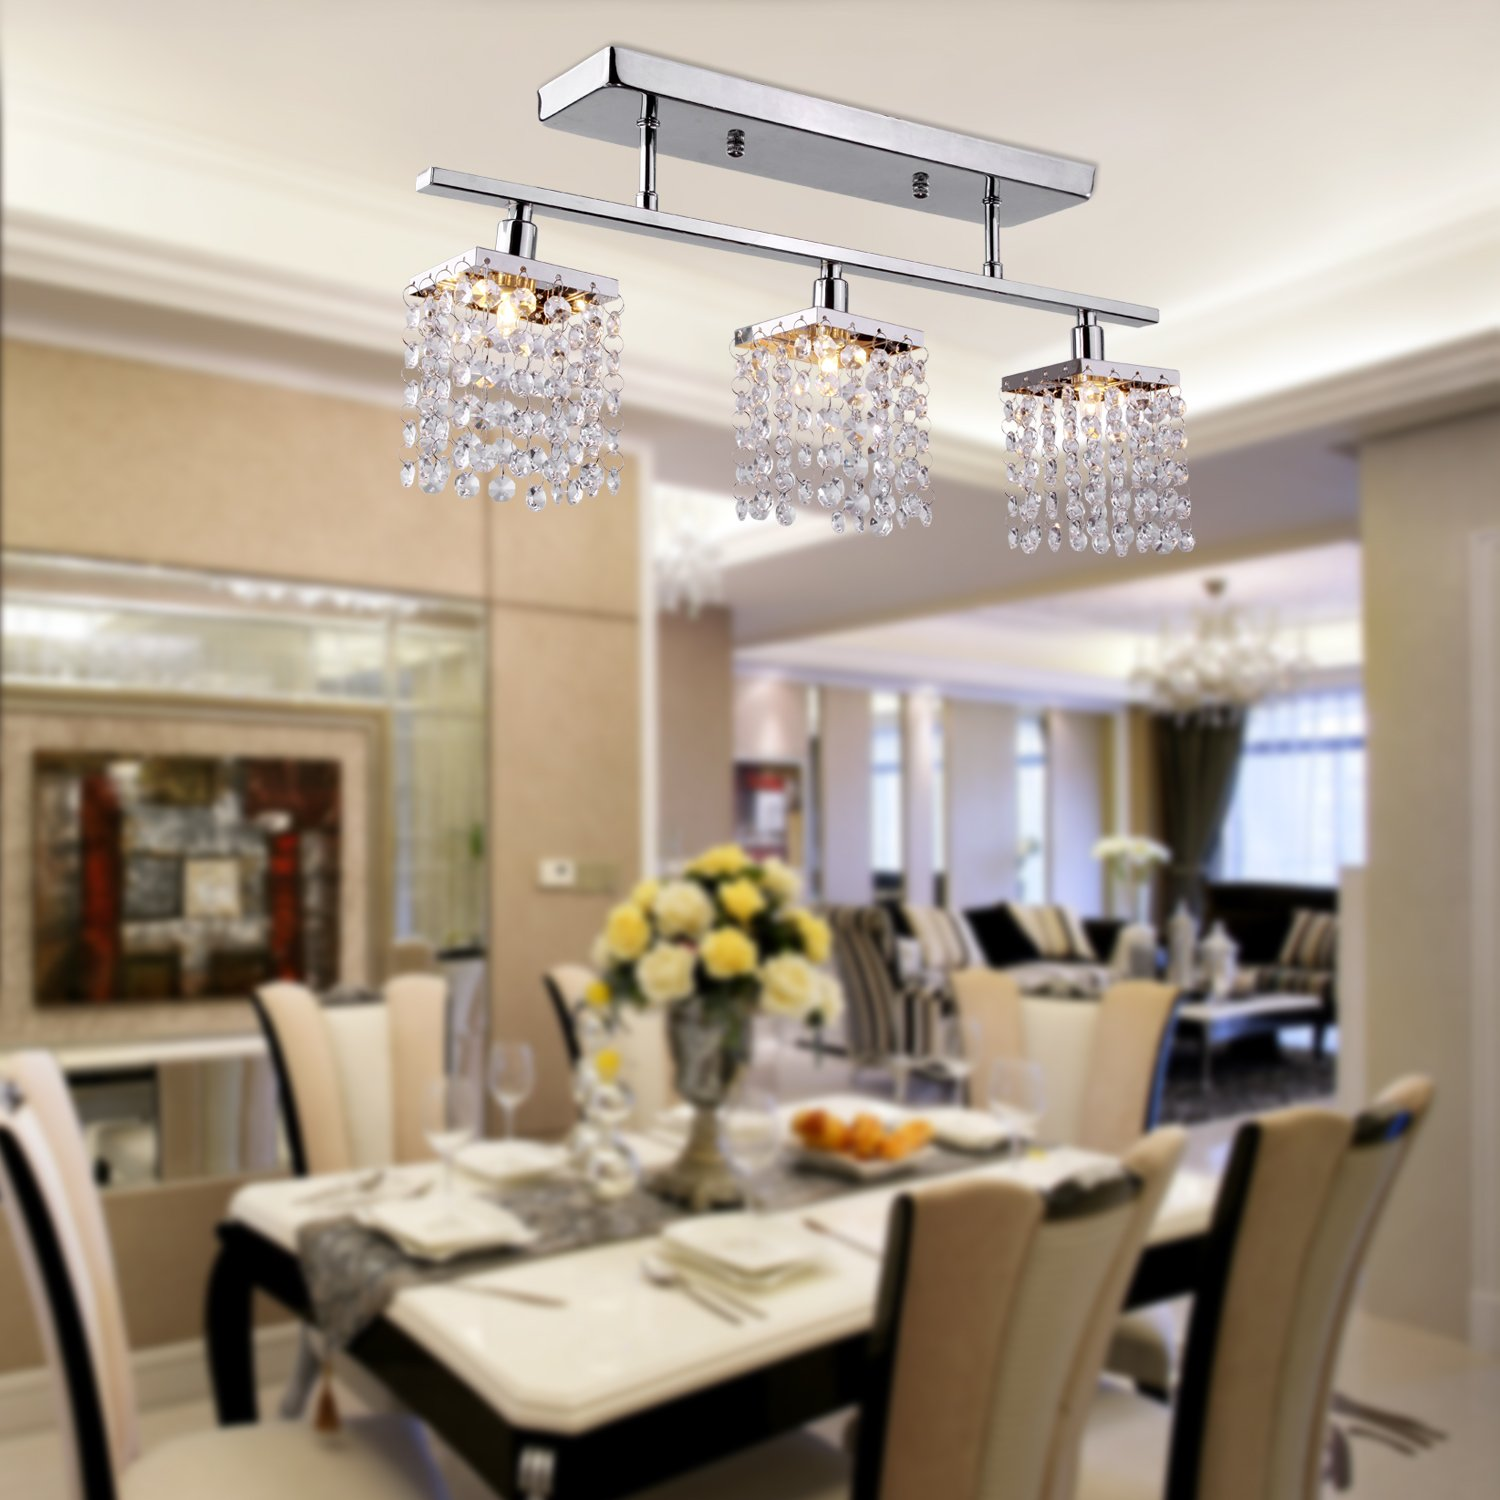 LightInTheBox Chandelier With 3 Lights In Crystal Flush Mount Modern Ceiling Light Fixture For Entry Dining Room Bedroom